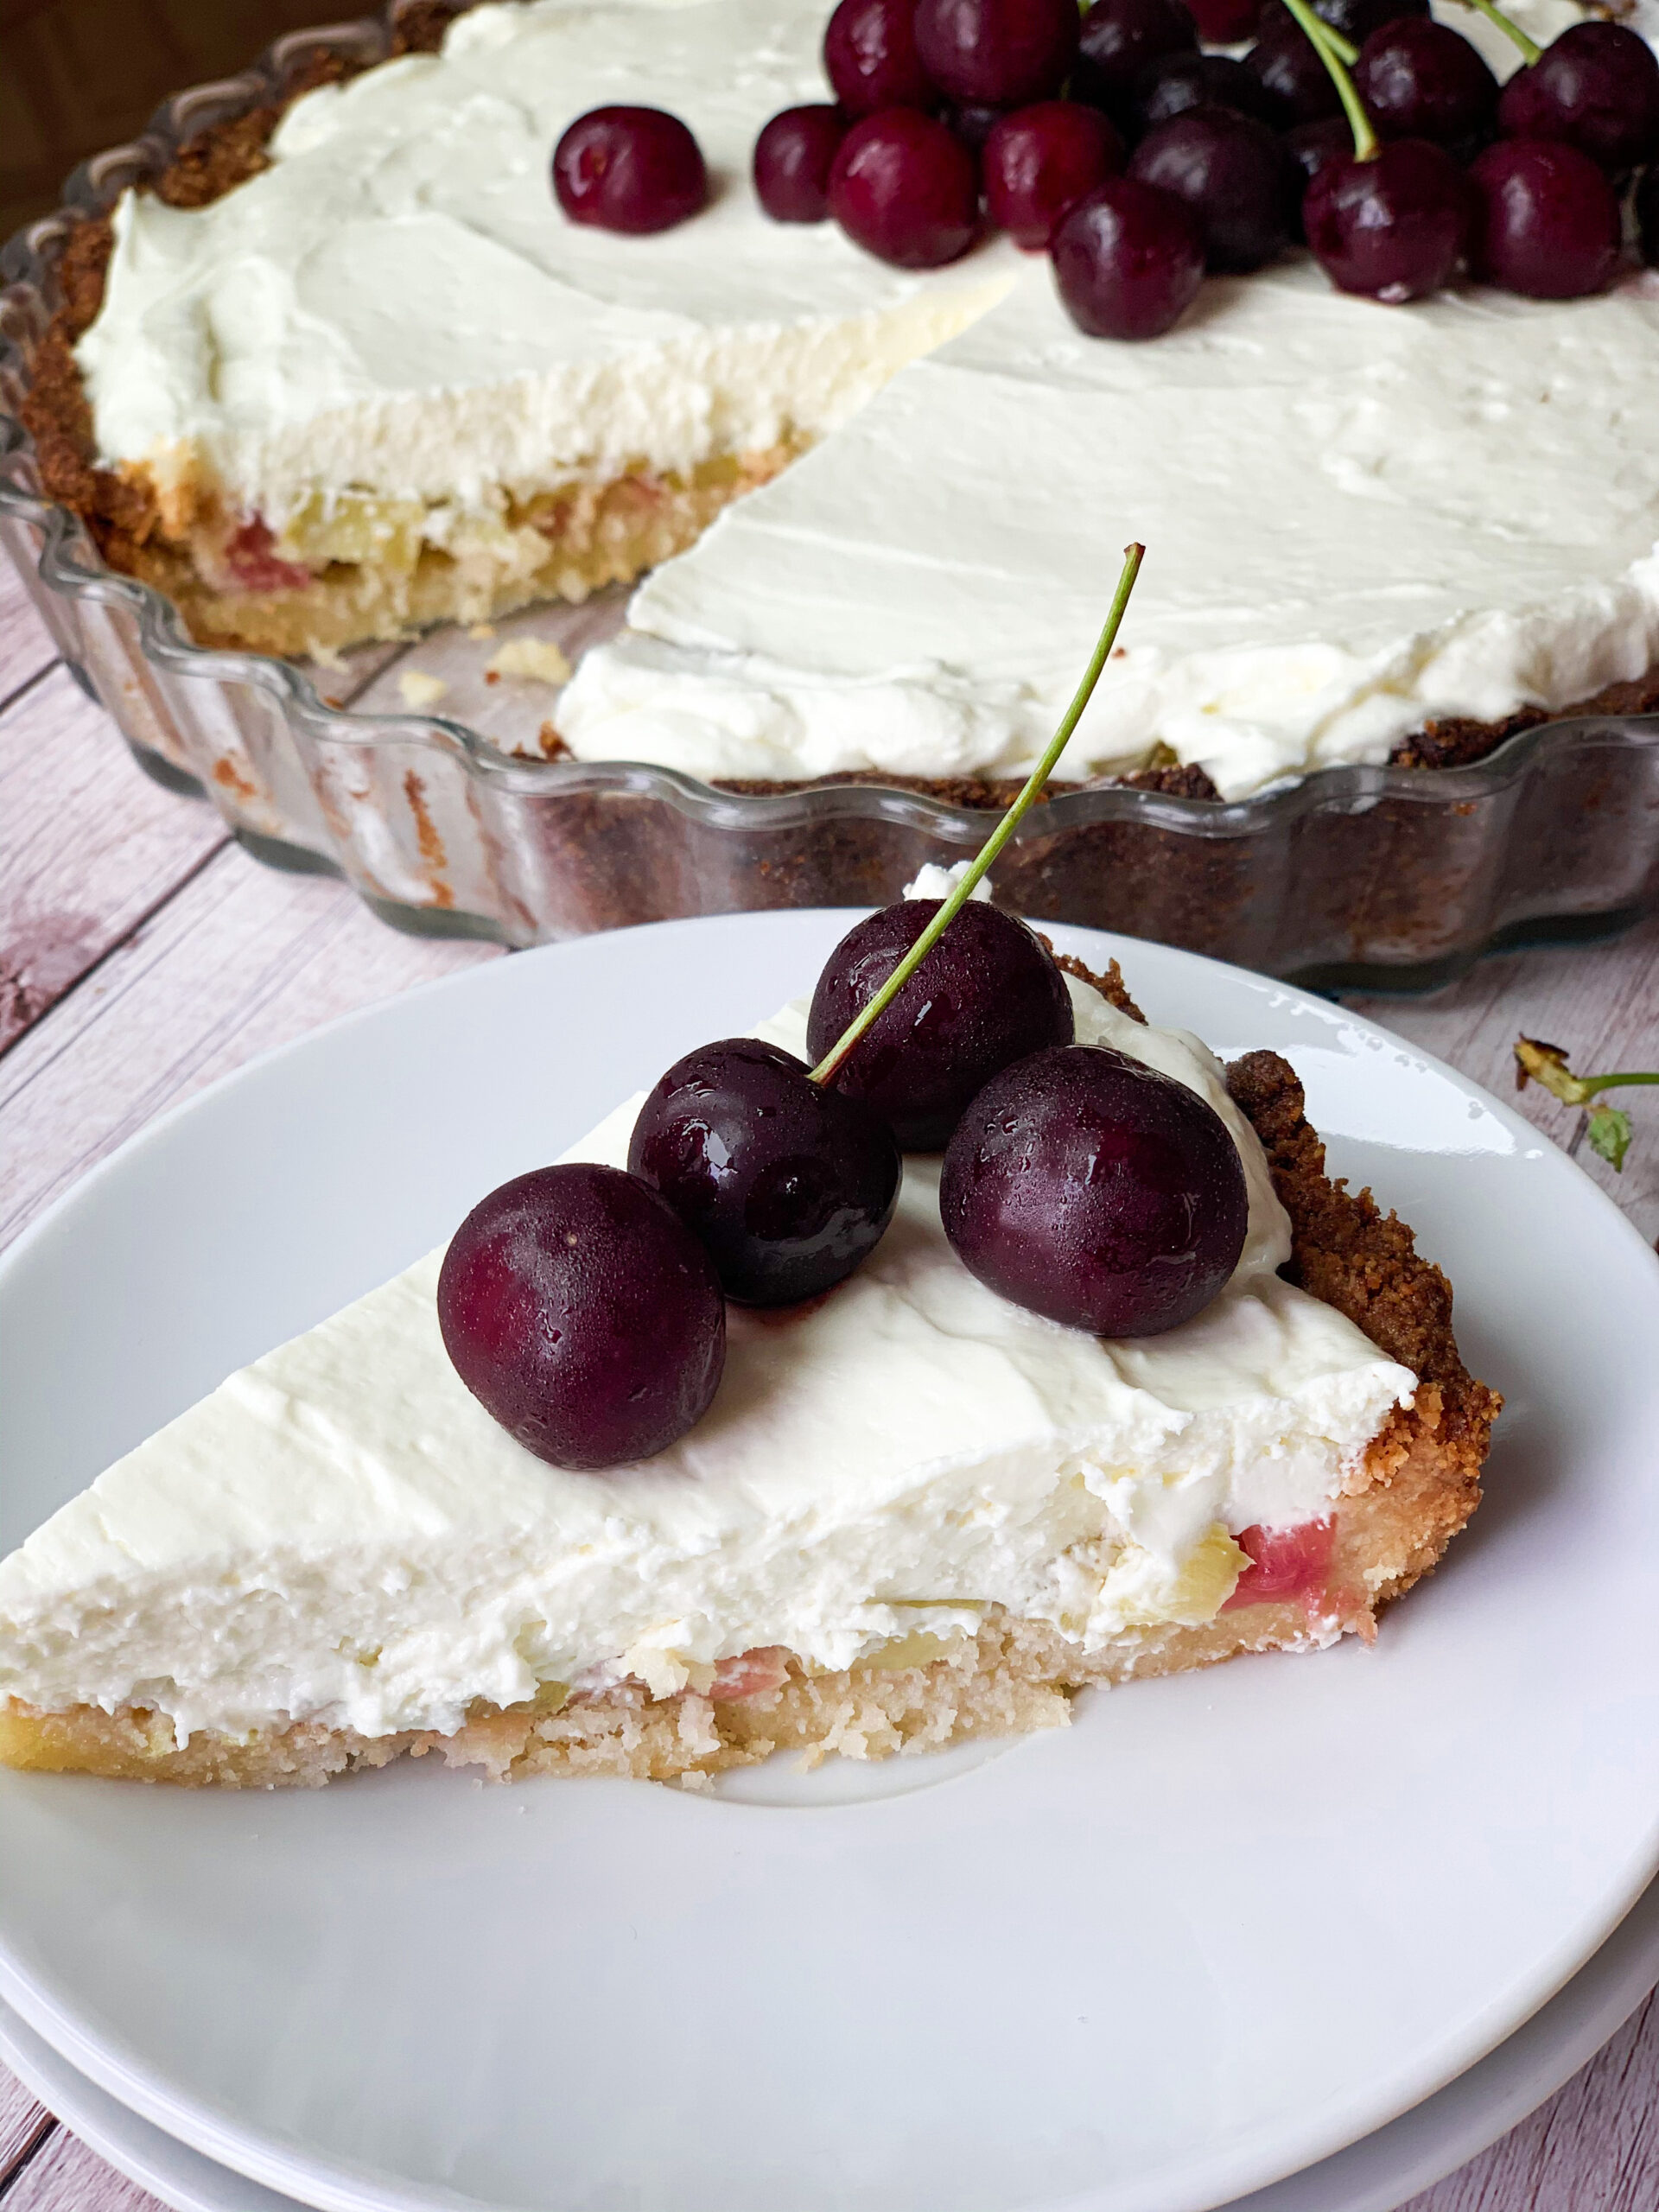 Low carb rhubarb pie with cheesecake topping and tart cherries